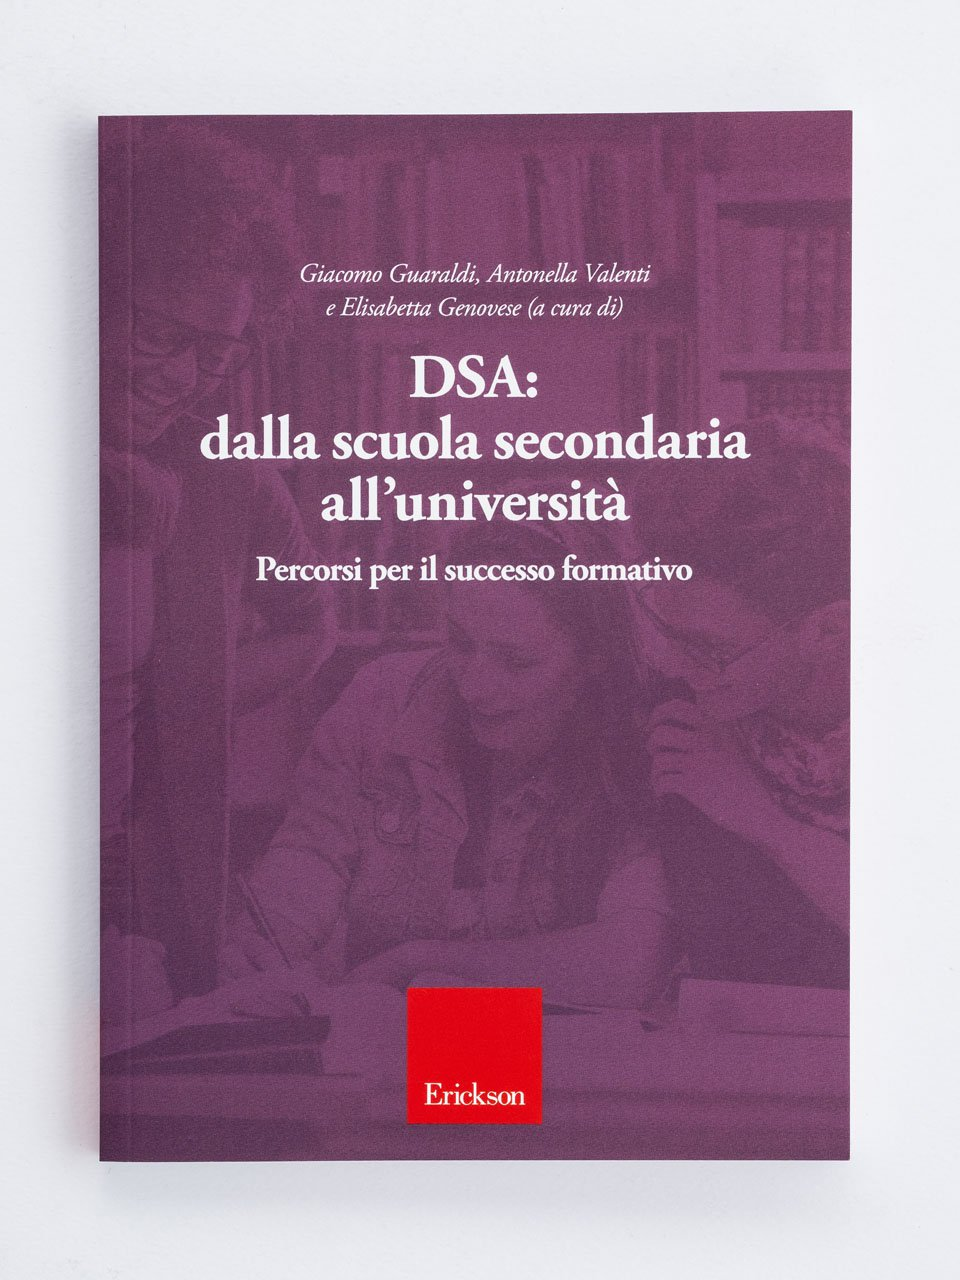 DSA: dalla scuola secondaria all'università - ScienzeImparo 3 - Libri - Erickson